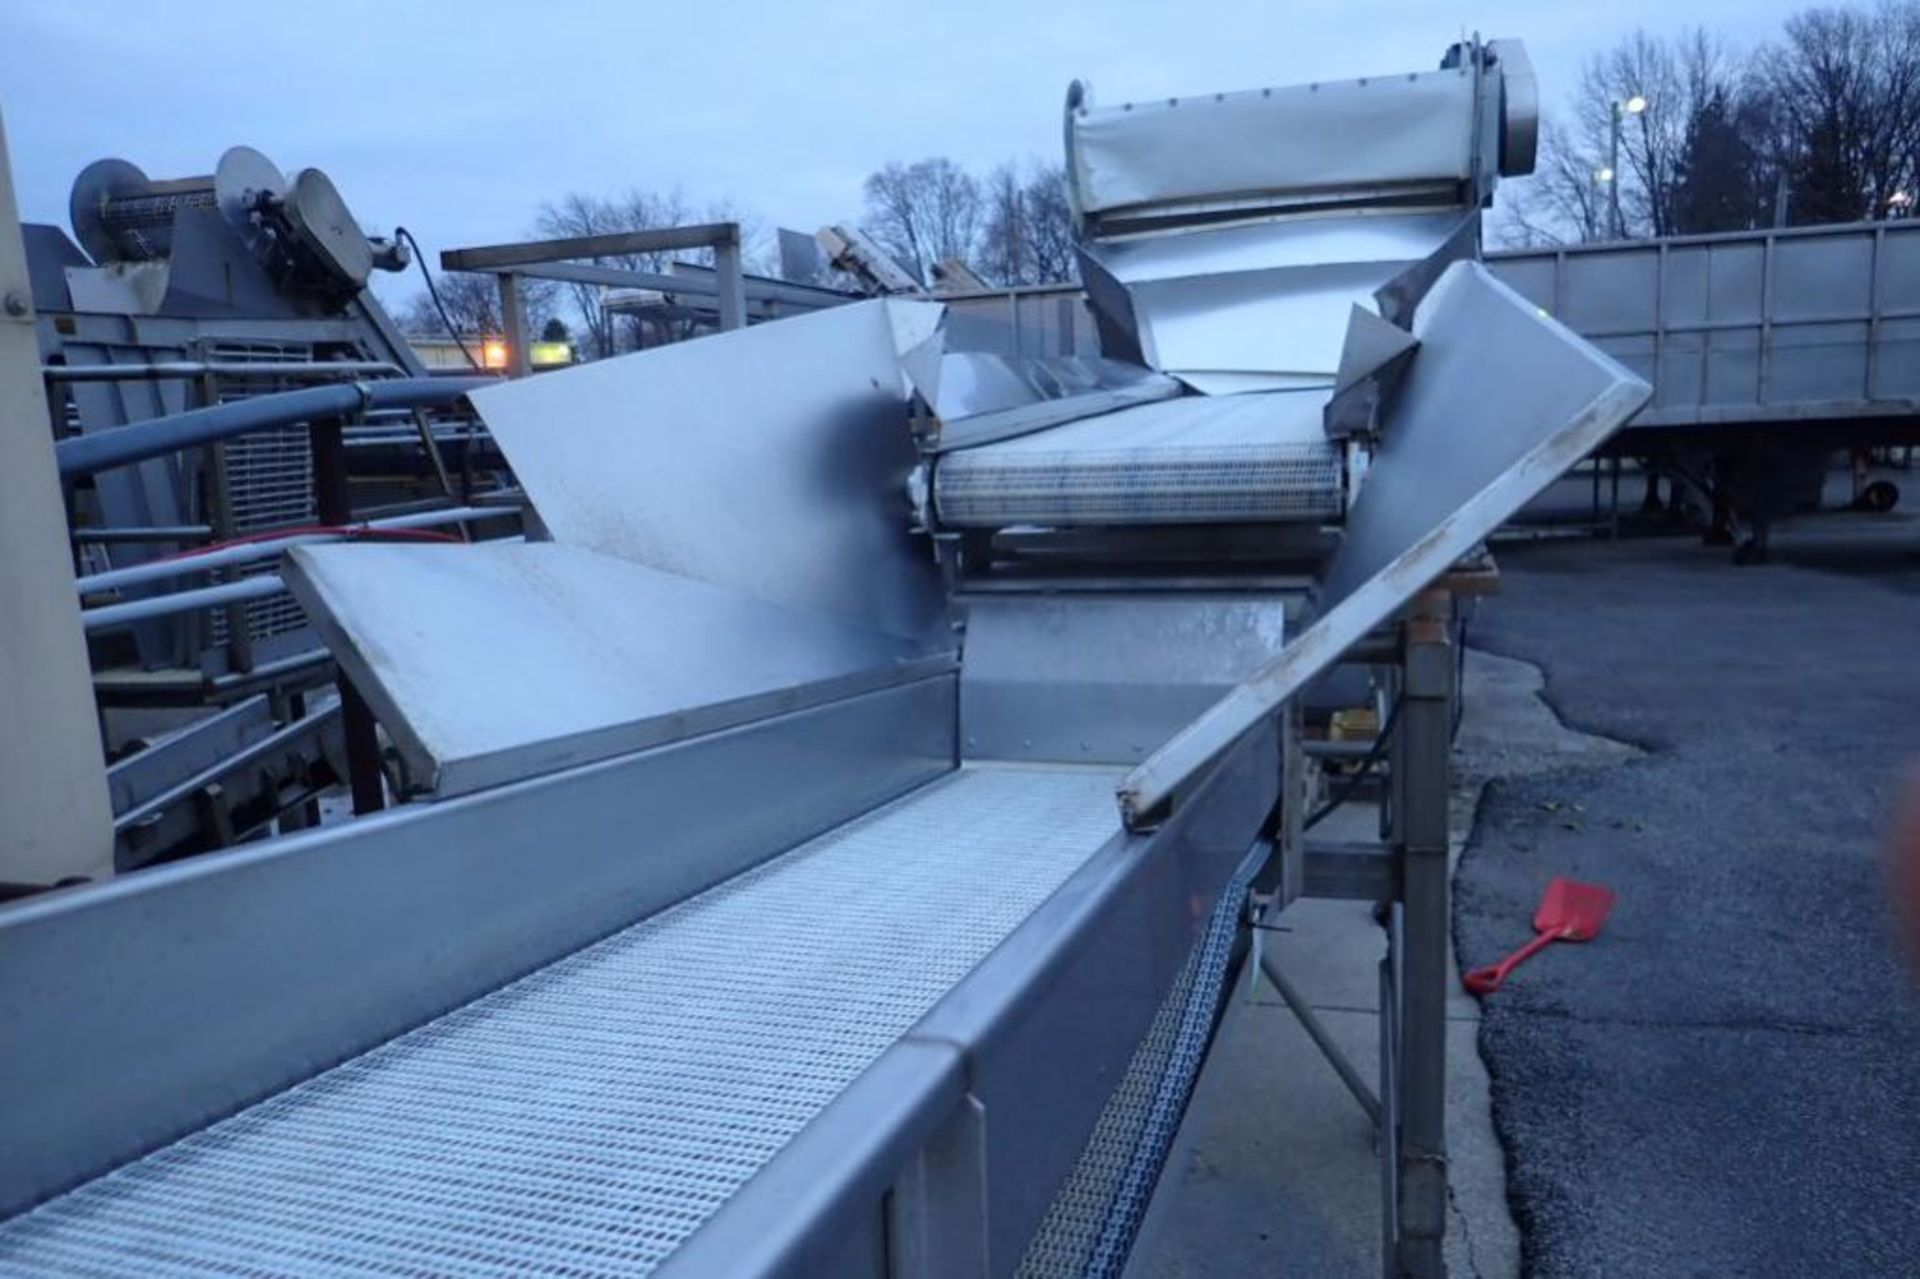 Incline conveyor, 35 ft. long x 24 in. wide x 60 in. infeed x 108 in. discharge, SS frame, motor and - Image 4 of 5